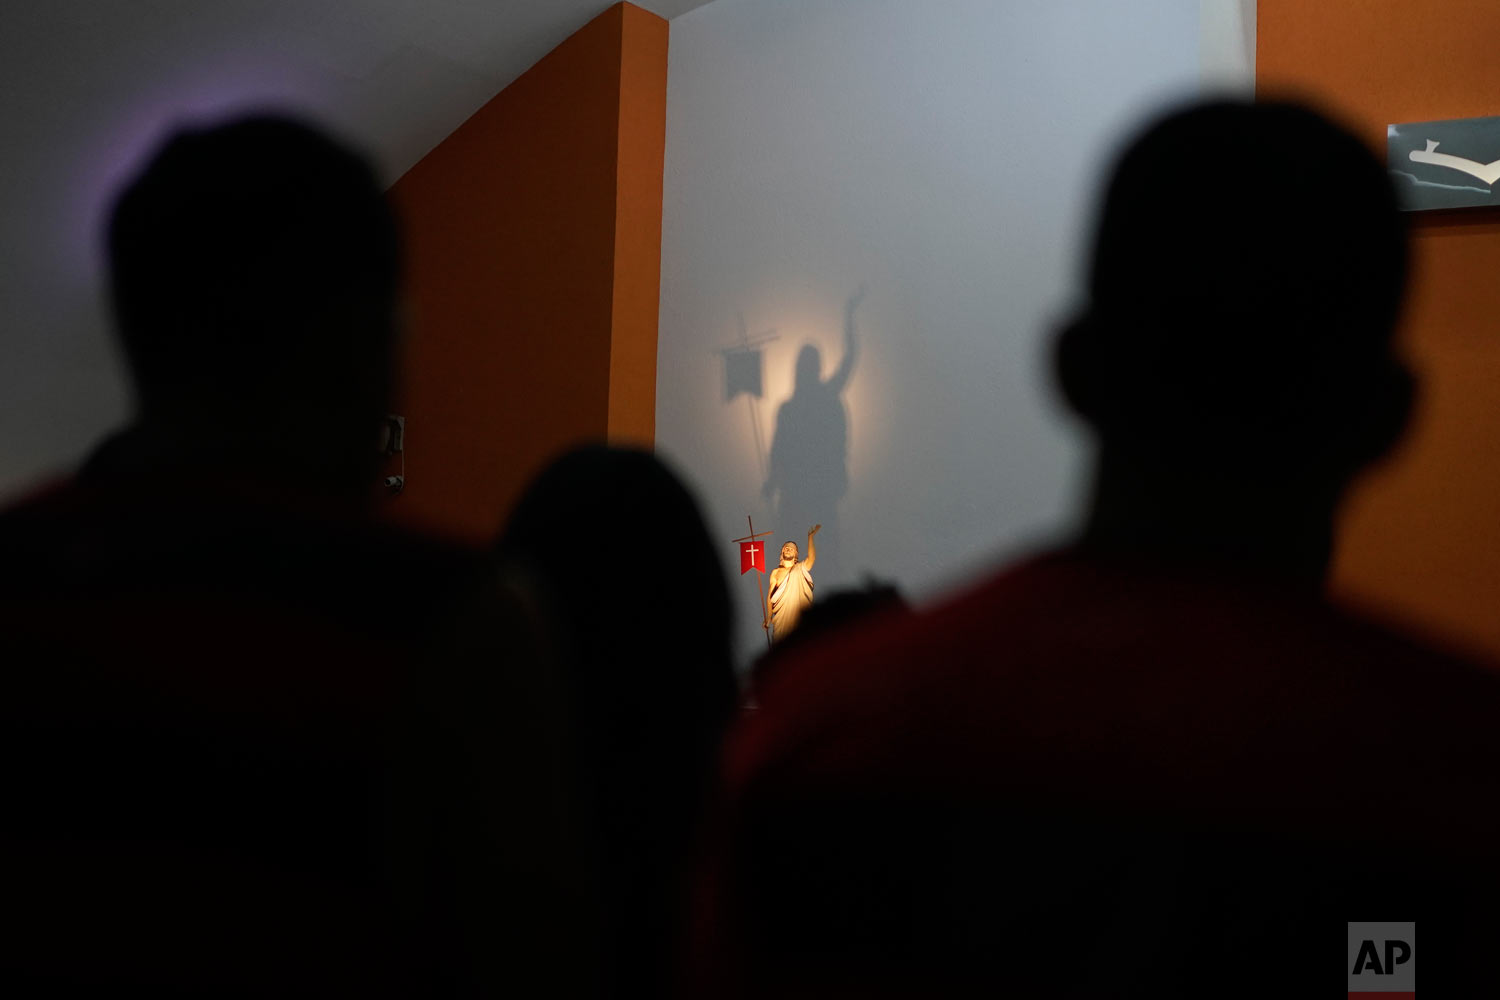 People attend a memorial Mass for the 10 teenage victims of a fire at a Brazilian soccer academy, in Rio de Janeiro, Brazil, Feb. 8, 2019. (AP Photo/Leo Correa)